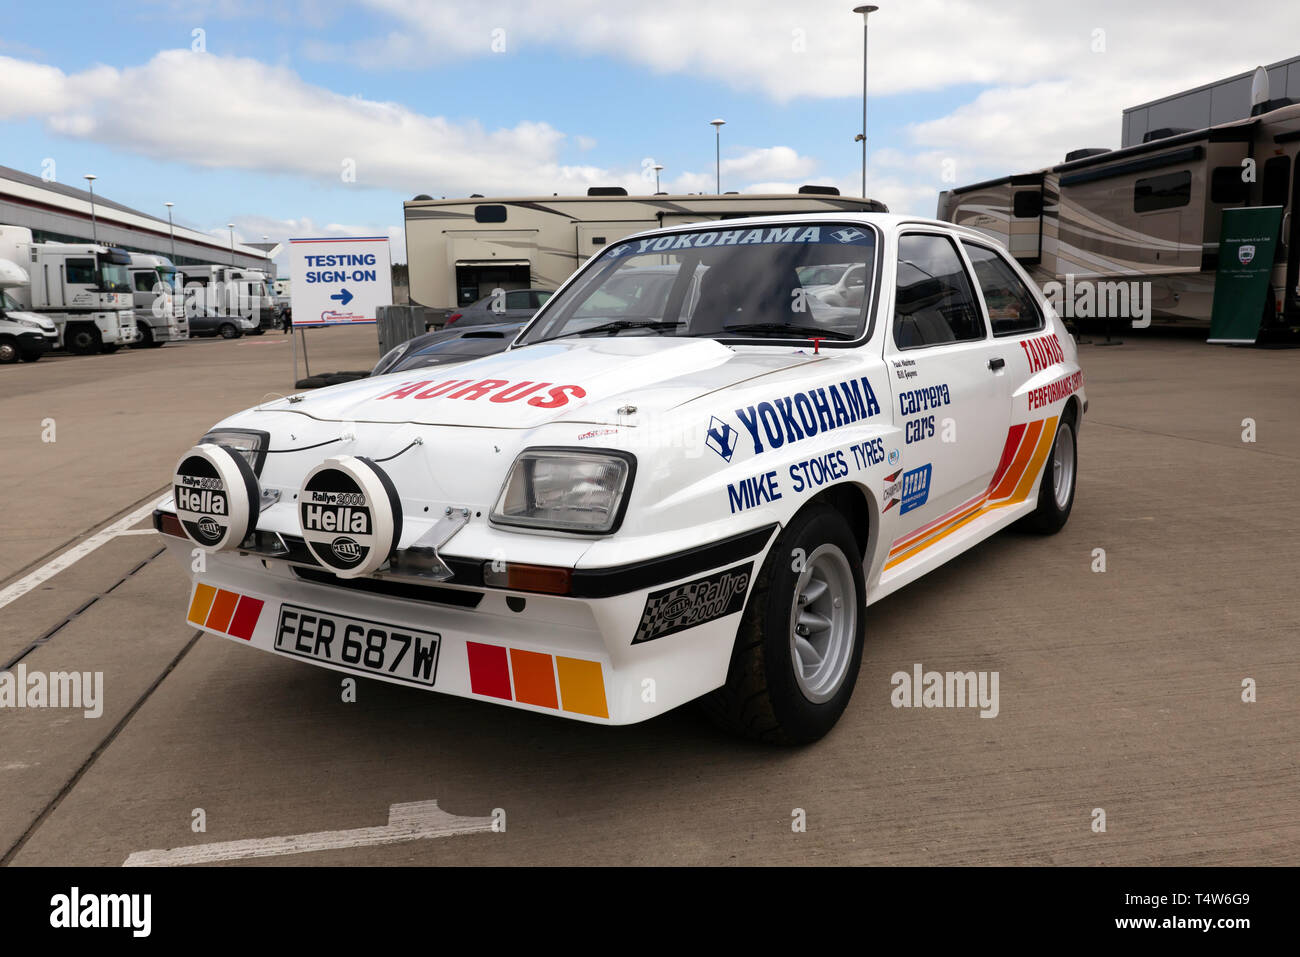 a 1980 vauxhall chevette hsr driven by paul watkins and bill gwynne in the international paddock during the 2019 silverstone classic media day stock photo alamy https www alamy com a 1980 vauxhall chevette hsr driven by paul watkins and bill gwynne in the international paddock during the 2019 silverstone classic media day image243957737 html